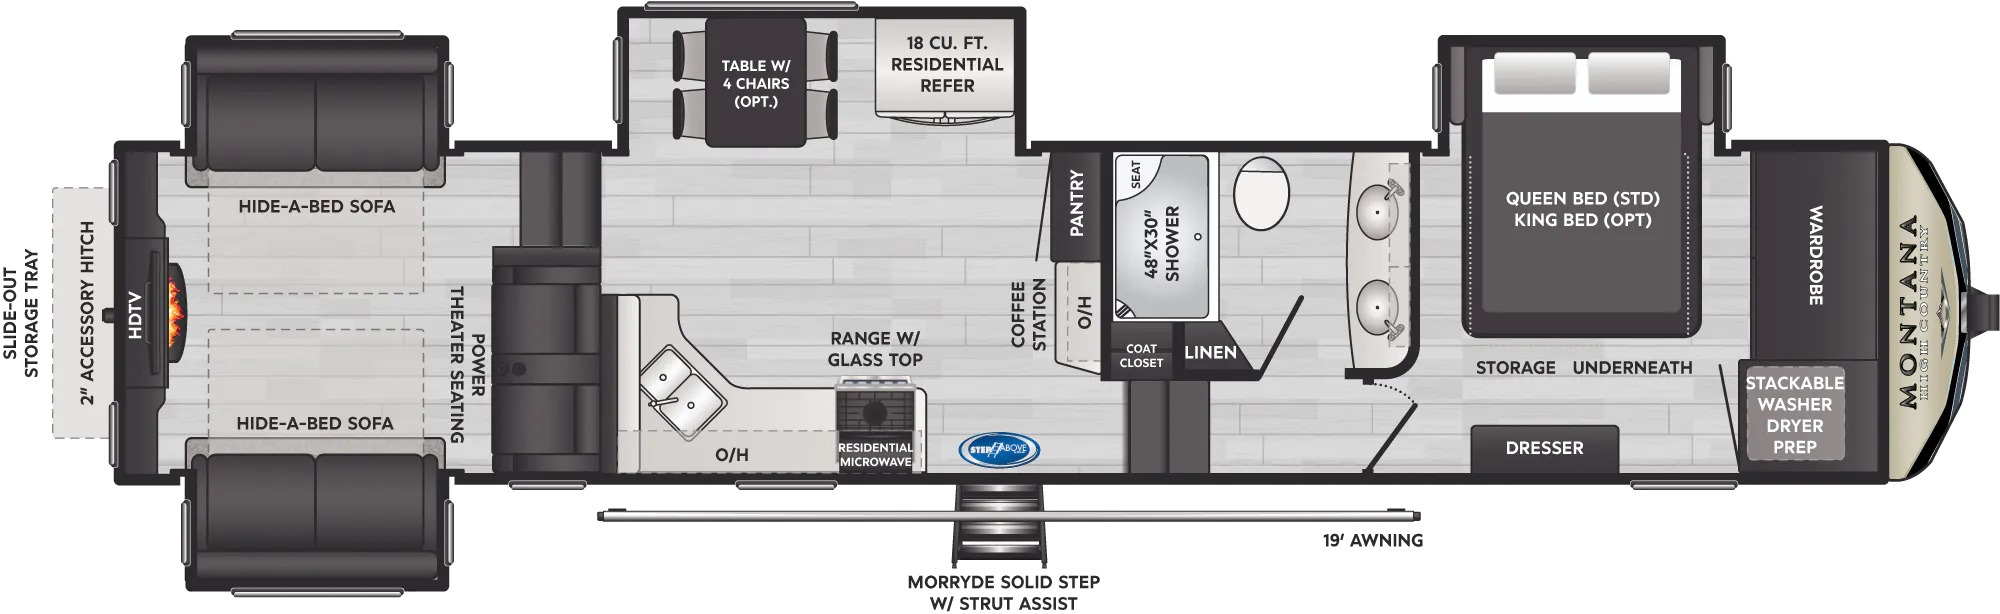 View Floor Plan for 2022 KEYSTONE MONTANA HIGH COUNTRY 373RD